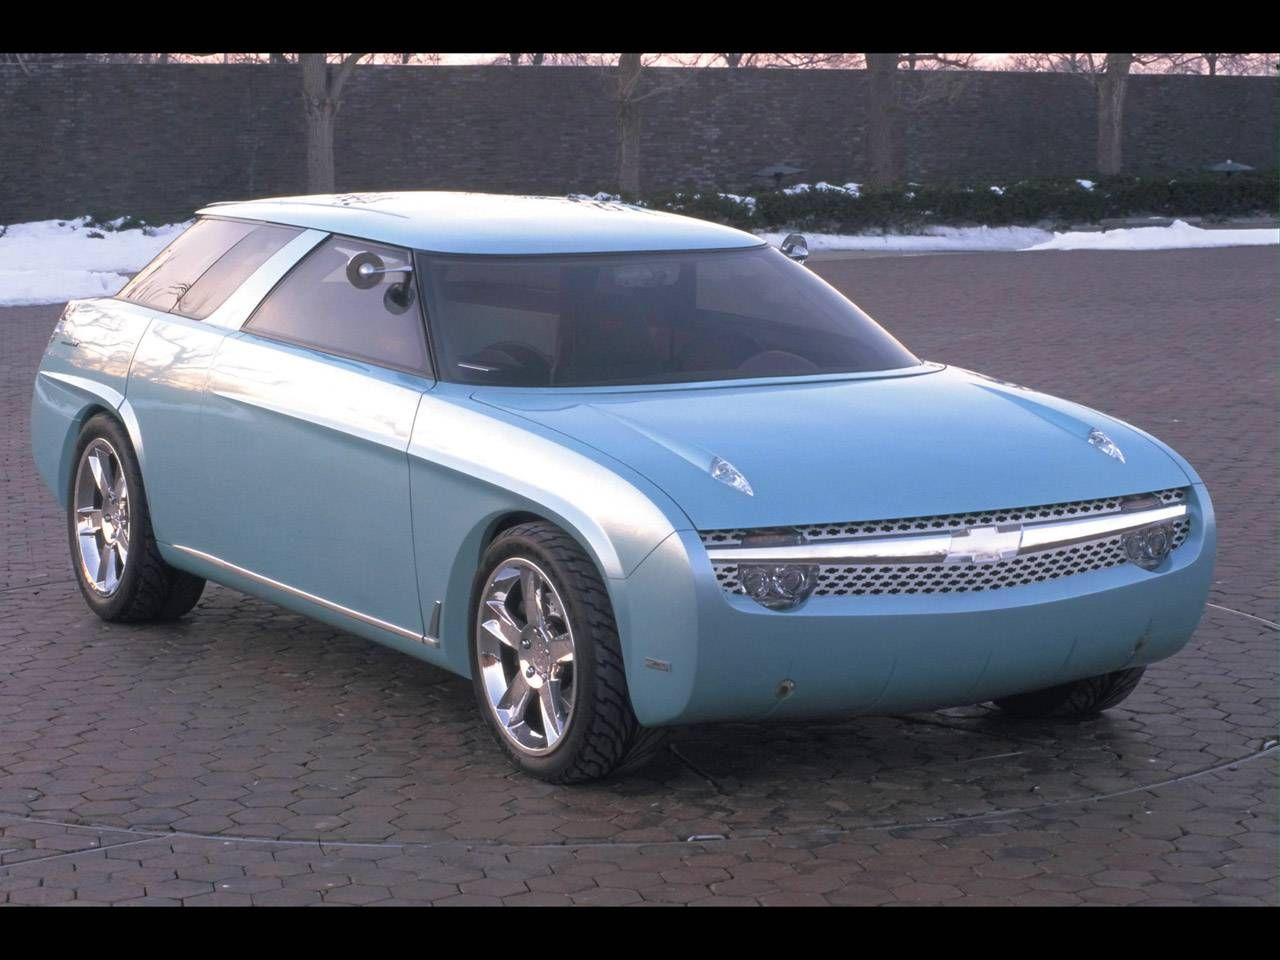 All Chevy chevy concepts : 1999 CHEVROLET NOMAD CONCEPT SNOW   Concept Cars   Pinterest ...